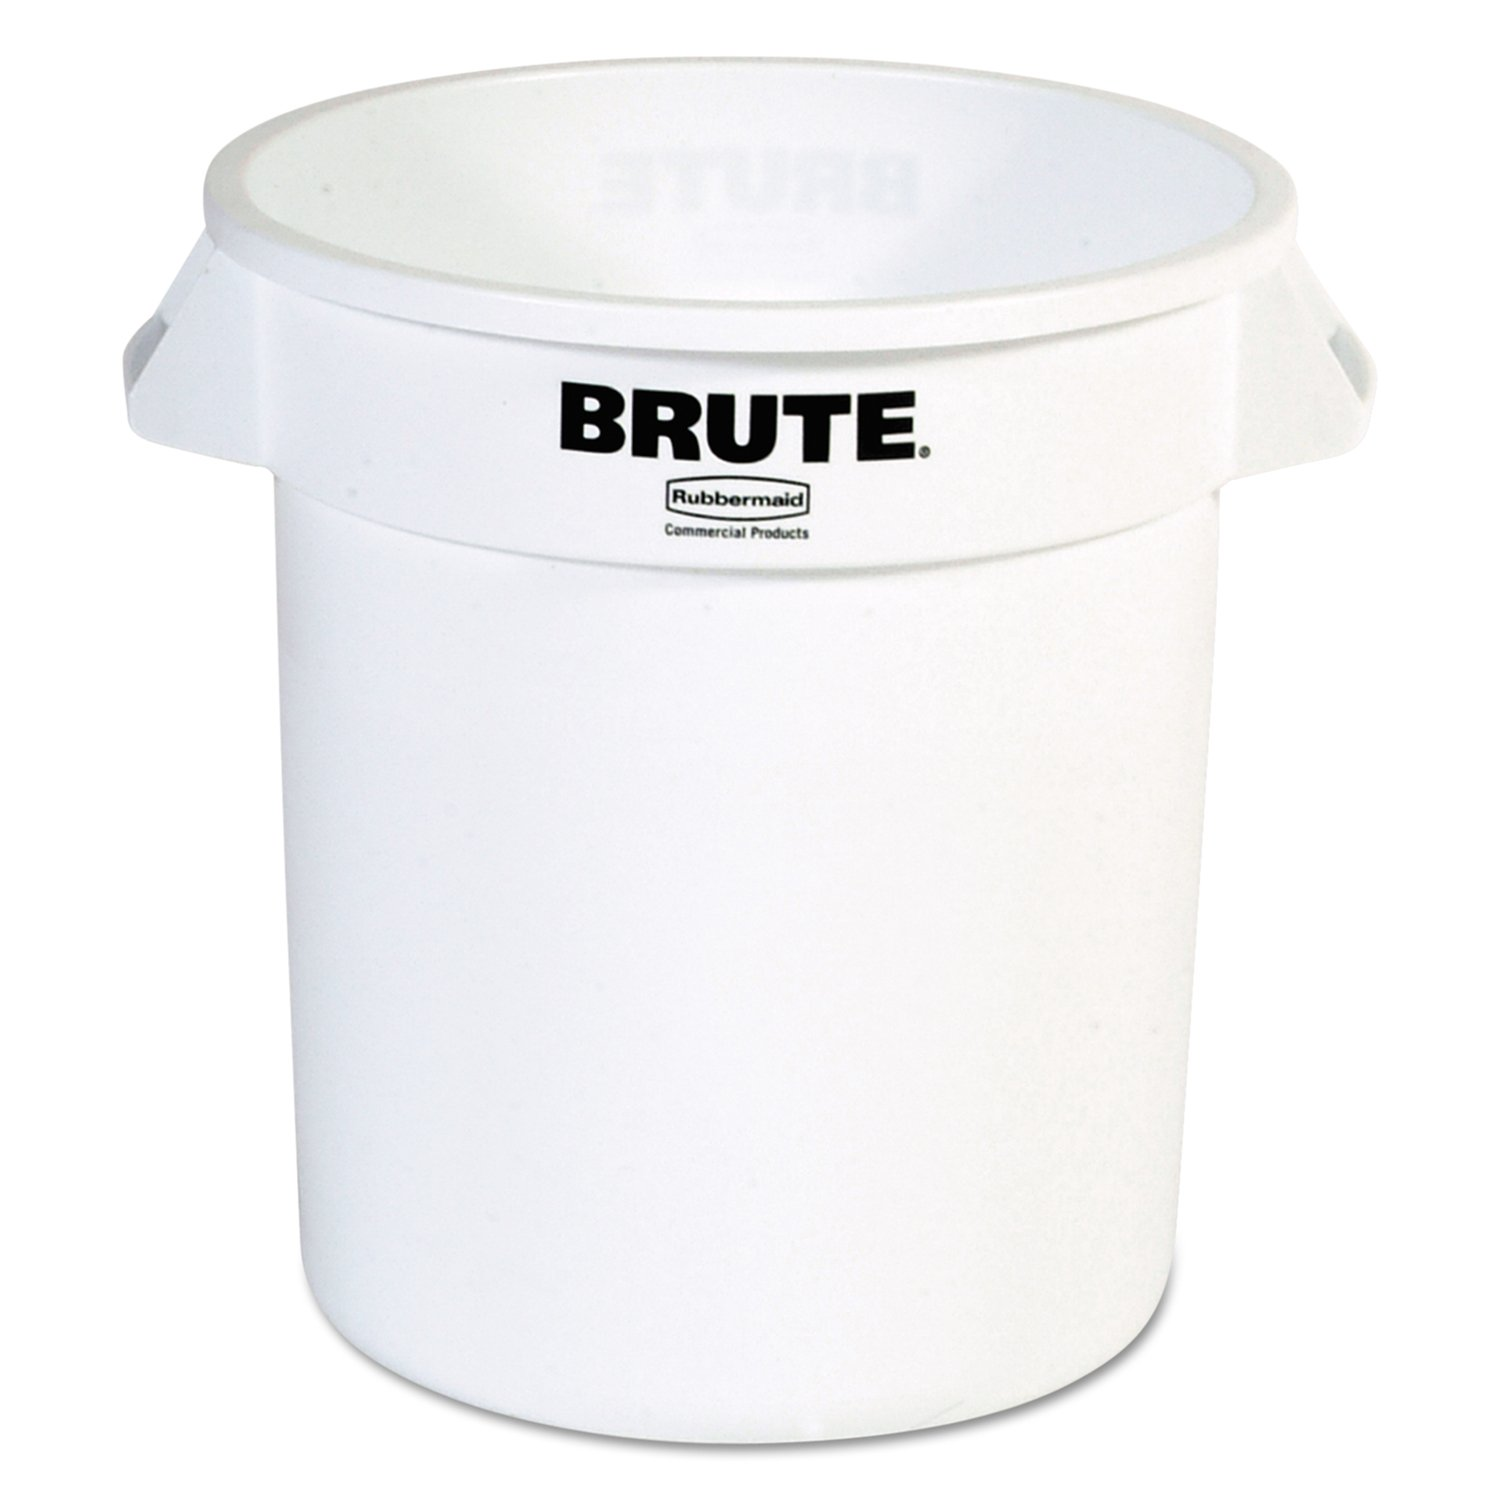 Rubbermaid Commercial RCP 2610 WHI Round Brute Container, Plastic, 10 gal, White